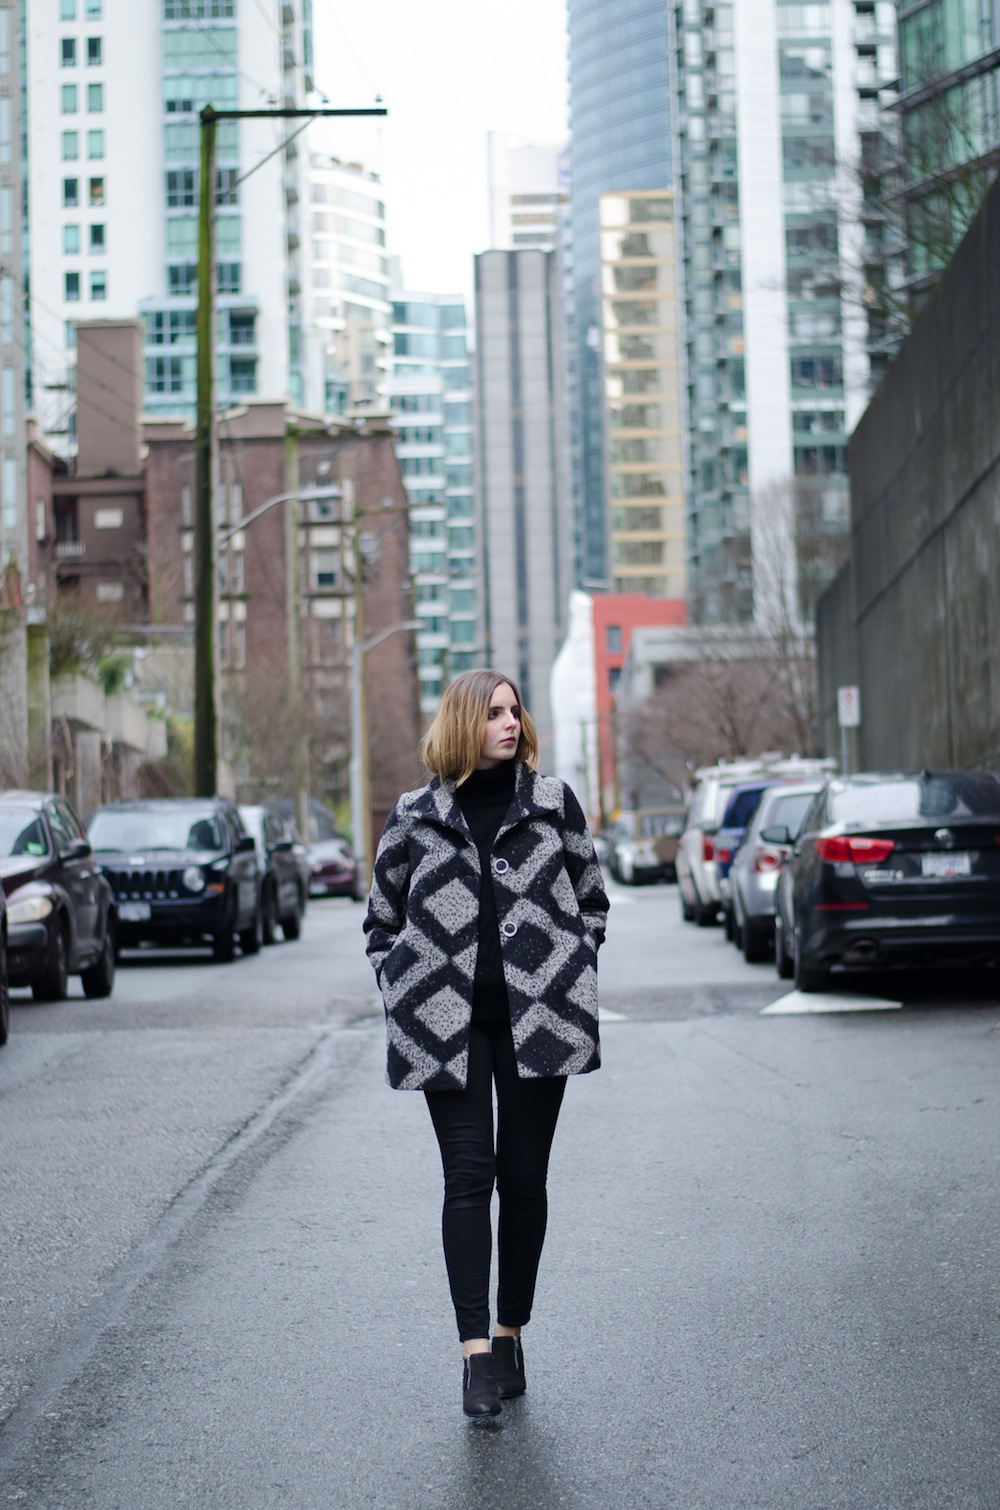 the minimalist style look, the urban umbrella style blog, vancouver style blog, vancouver style blogger, vancouver style bloggers, vancouver fashion blog, vancouver lifestyle blog, vancouver health blog, vancouver fitness blog, vancouver travel blog, canadian fashion blog, canadian style blog, canadian lifestyle blog, canadian health blog, canadian fitness blog, canadian travel blog, west coast style, bree aylwin, minimalist fashion blog, how to wear minimalist style trend, minimalist fashion trend outfit ideas, top vancouver fashion bloggers, top fashion blogs, best style blogs 2015, popular fashion blogs, top style blogs, top lifestyle blogs, top fitness blogs, top health blogs, top travel blogs